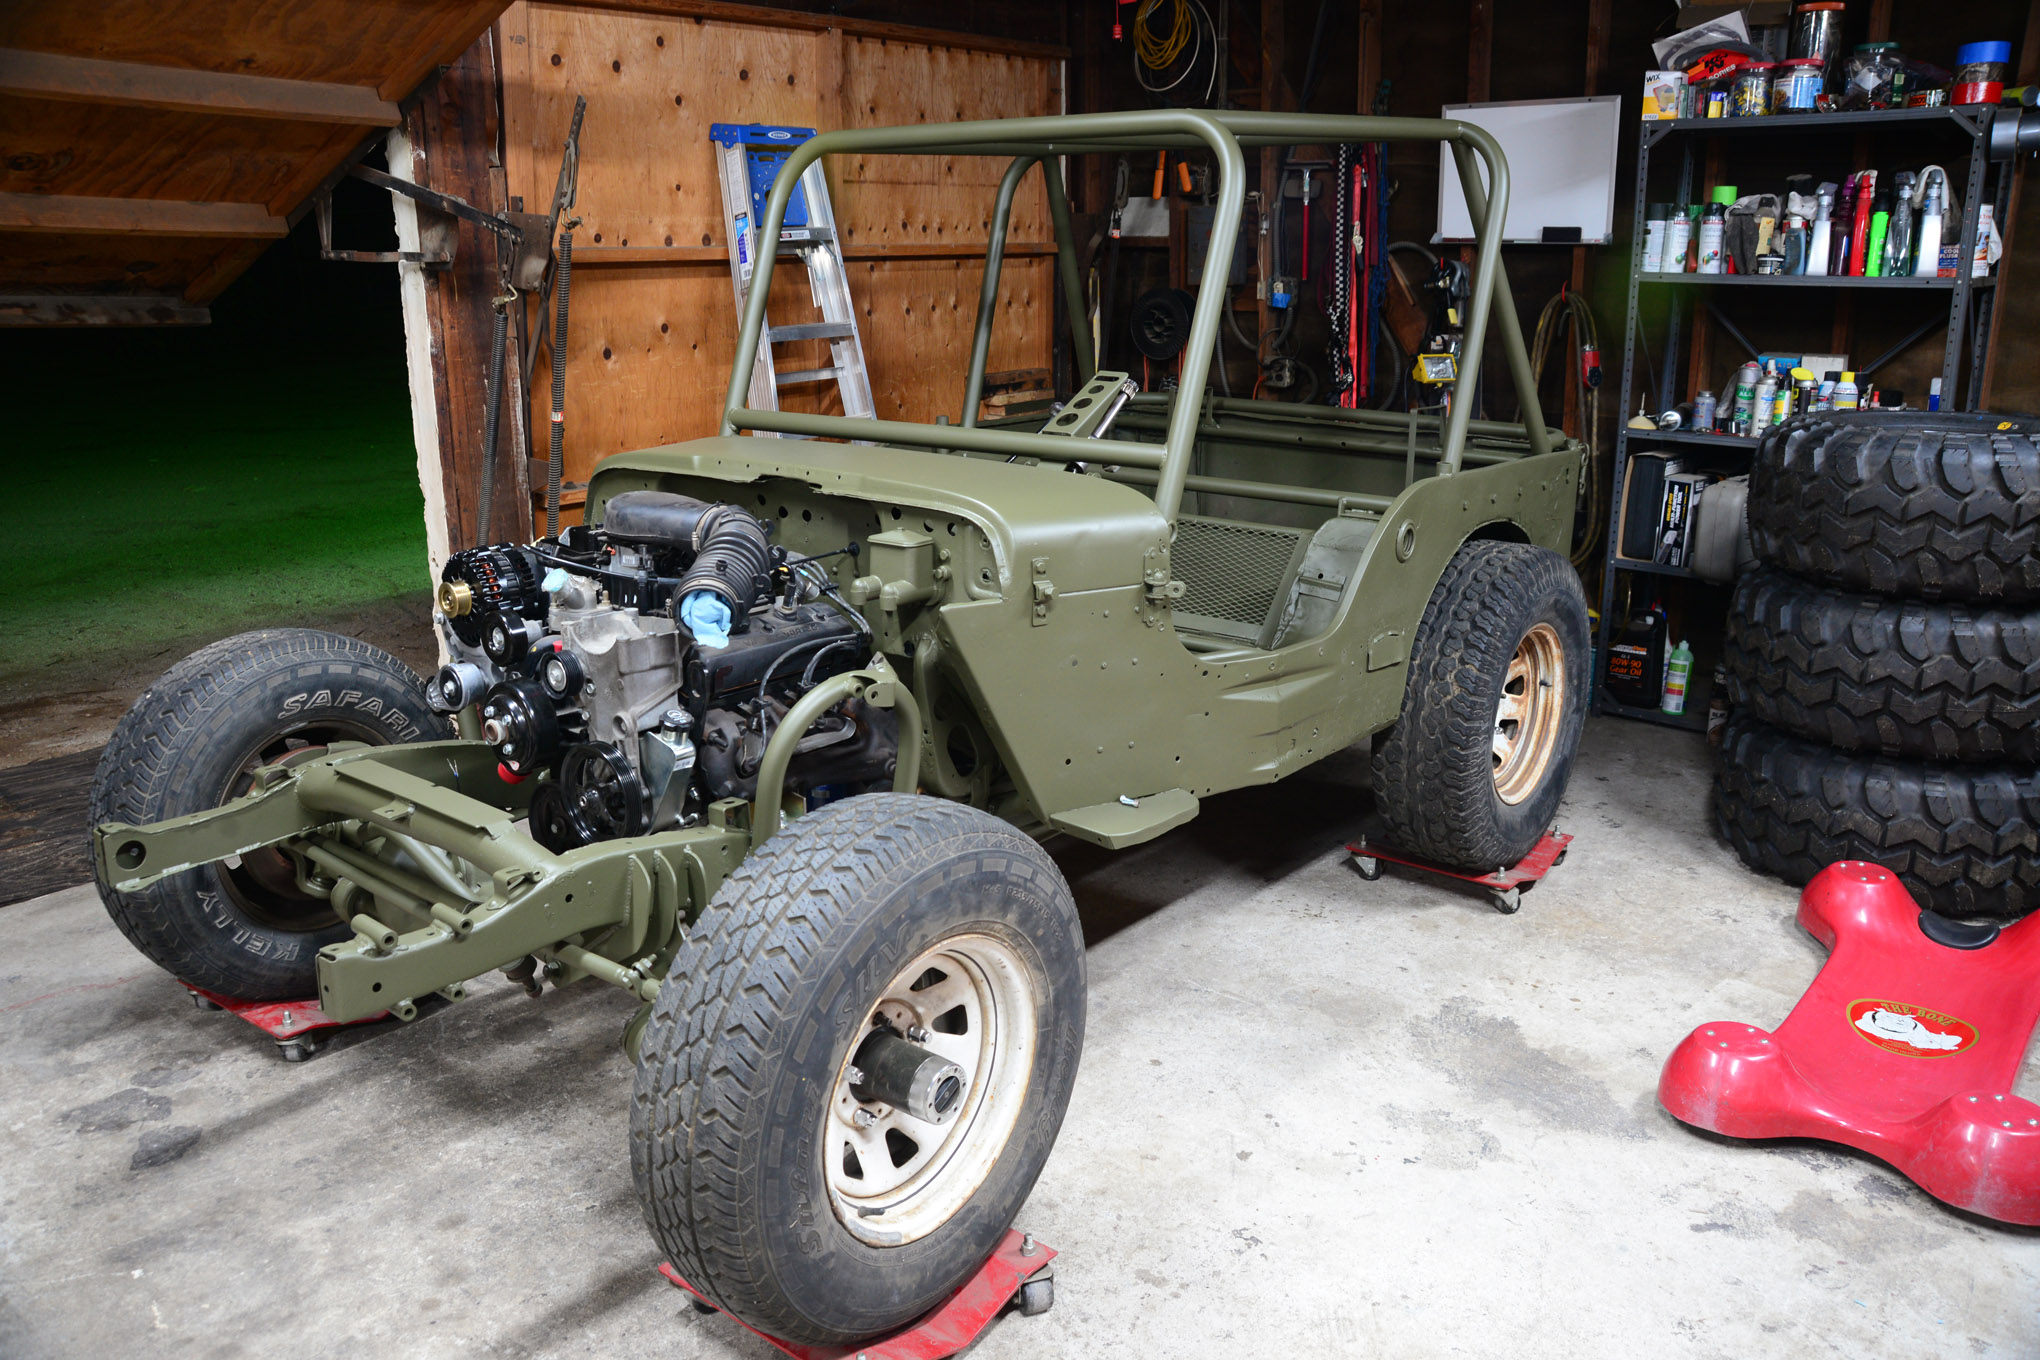 001 mailbag willys jeep flatfender cappa gpw mb